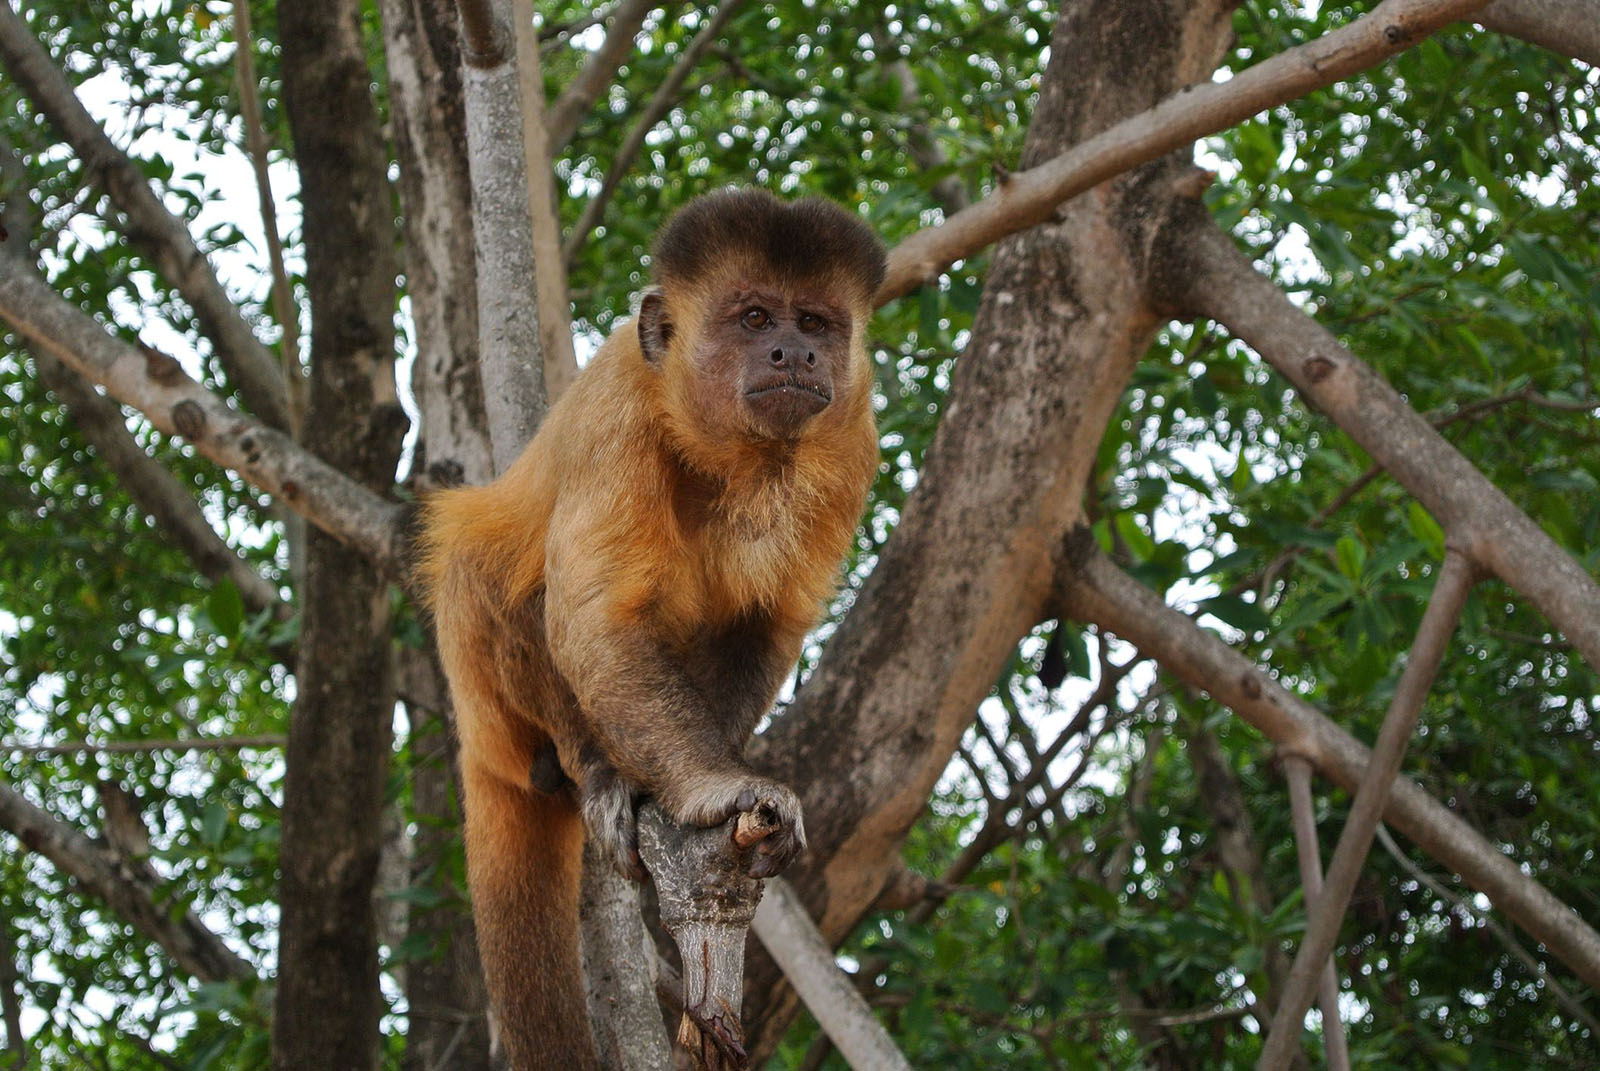 Science News Flash: Stone Tool Use by Capuchin Monkeys Challenges Human Evolution